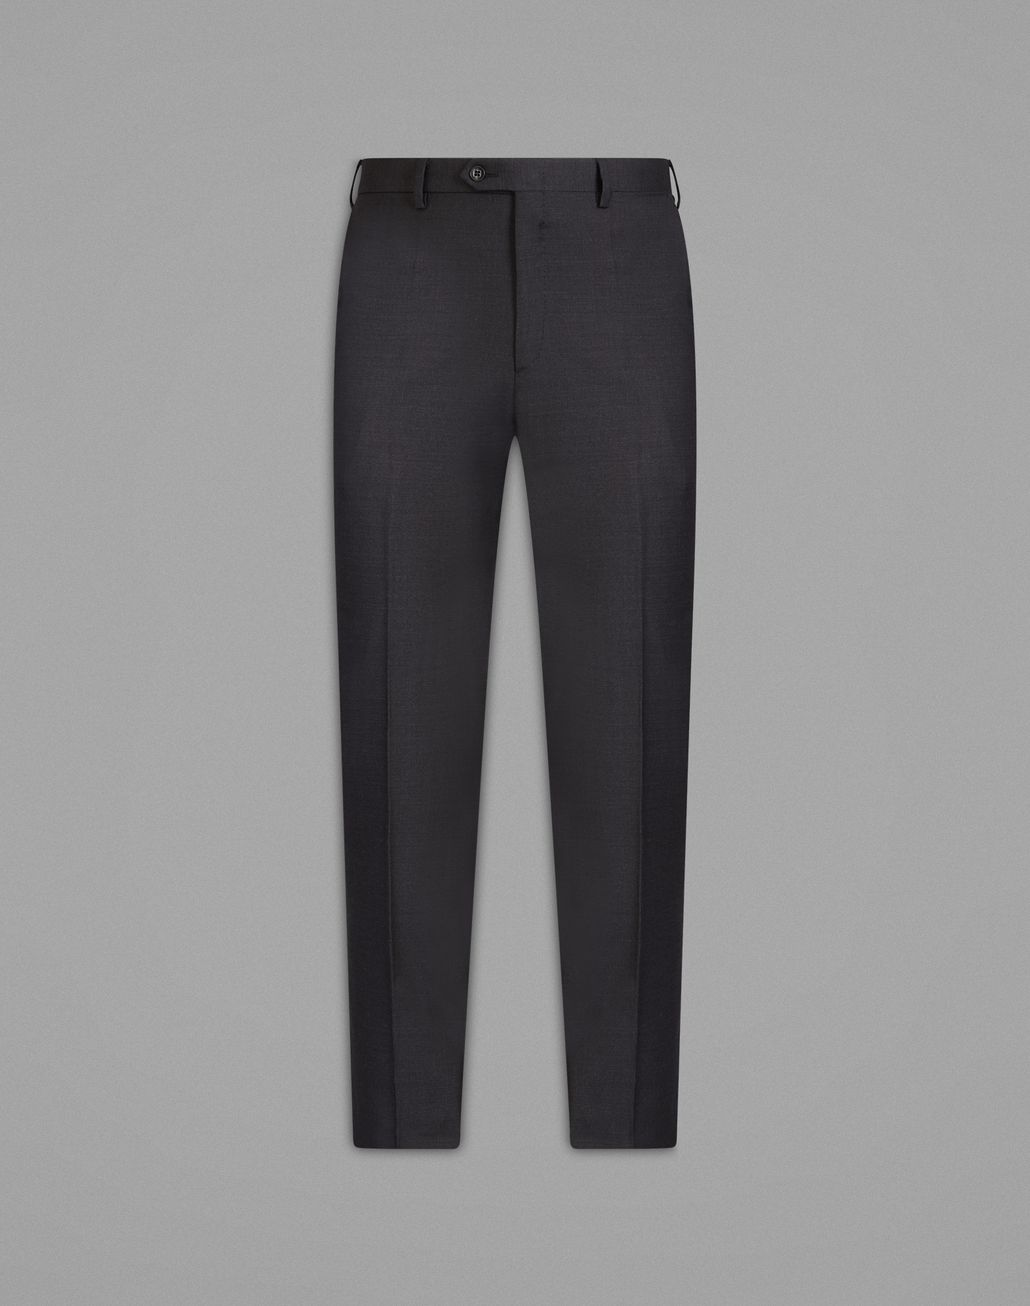 BRIONI 'Essential' Grey Tigullio Pants Trousers Man f